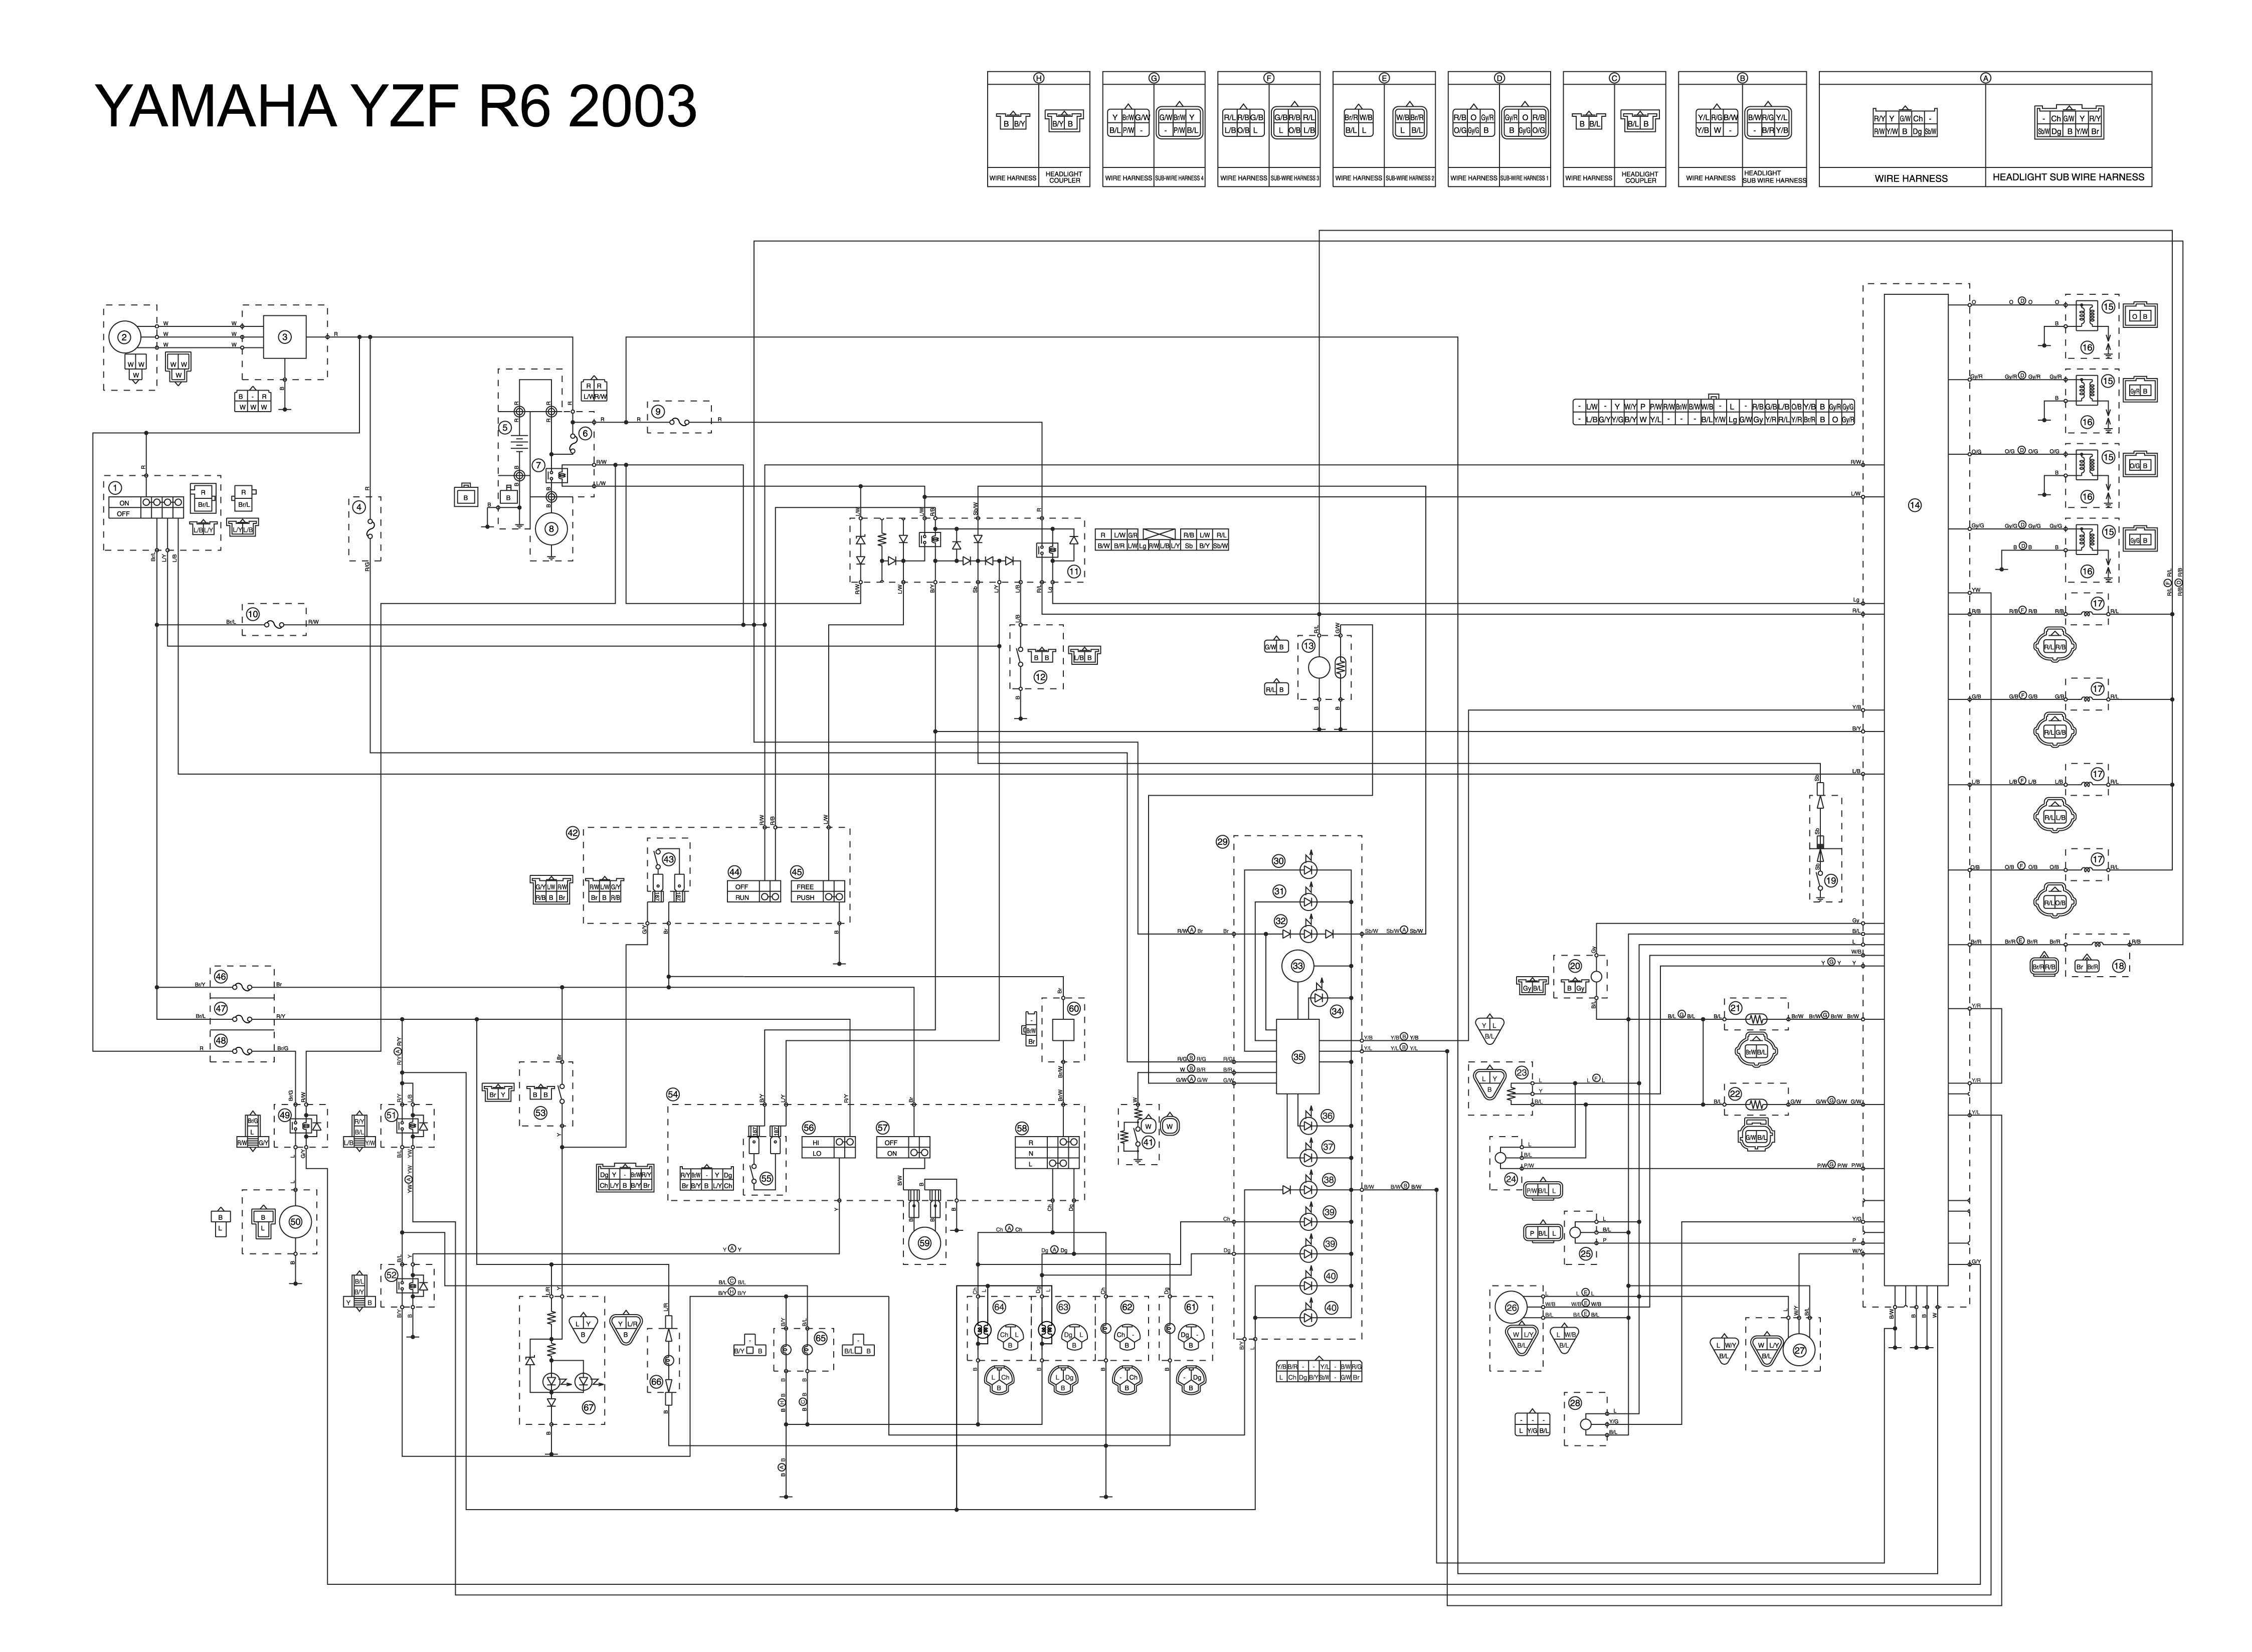 Honda 200s Wiring Diagram Yamaha Xj650 Kawasaki Kz550 Diagrams On Clutch Suzuki Gs550